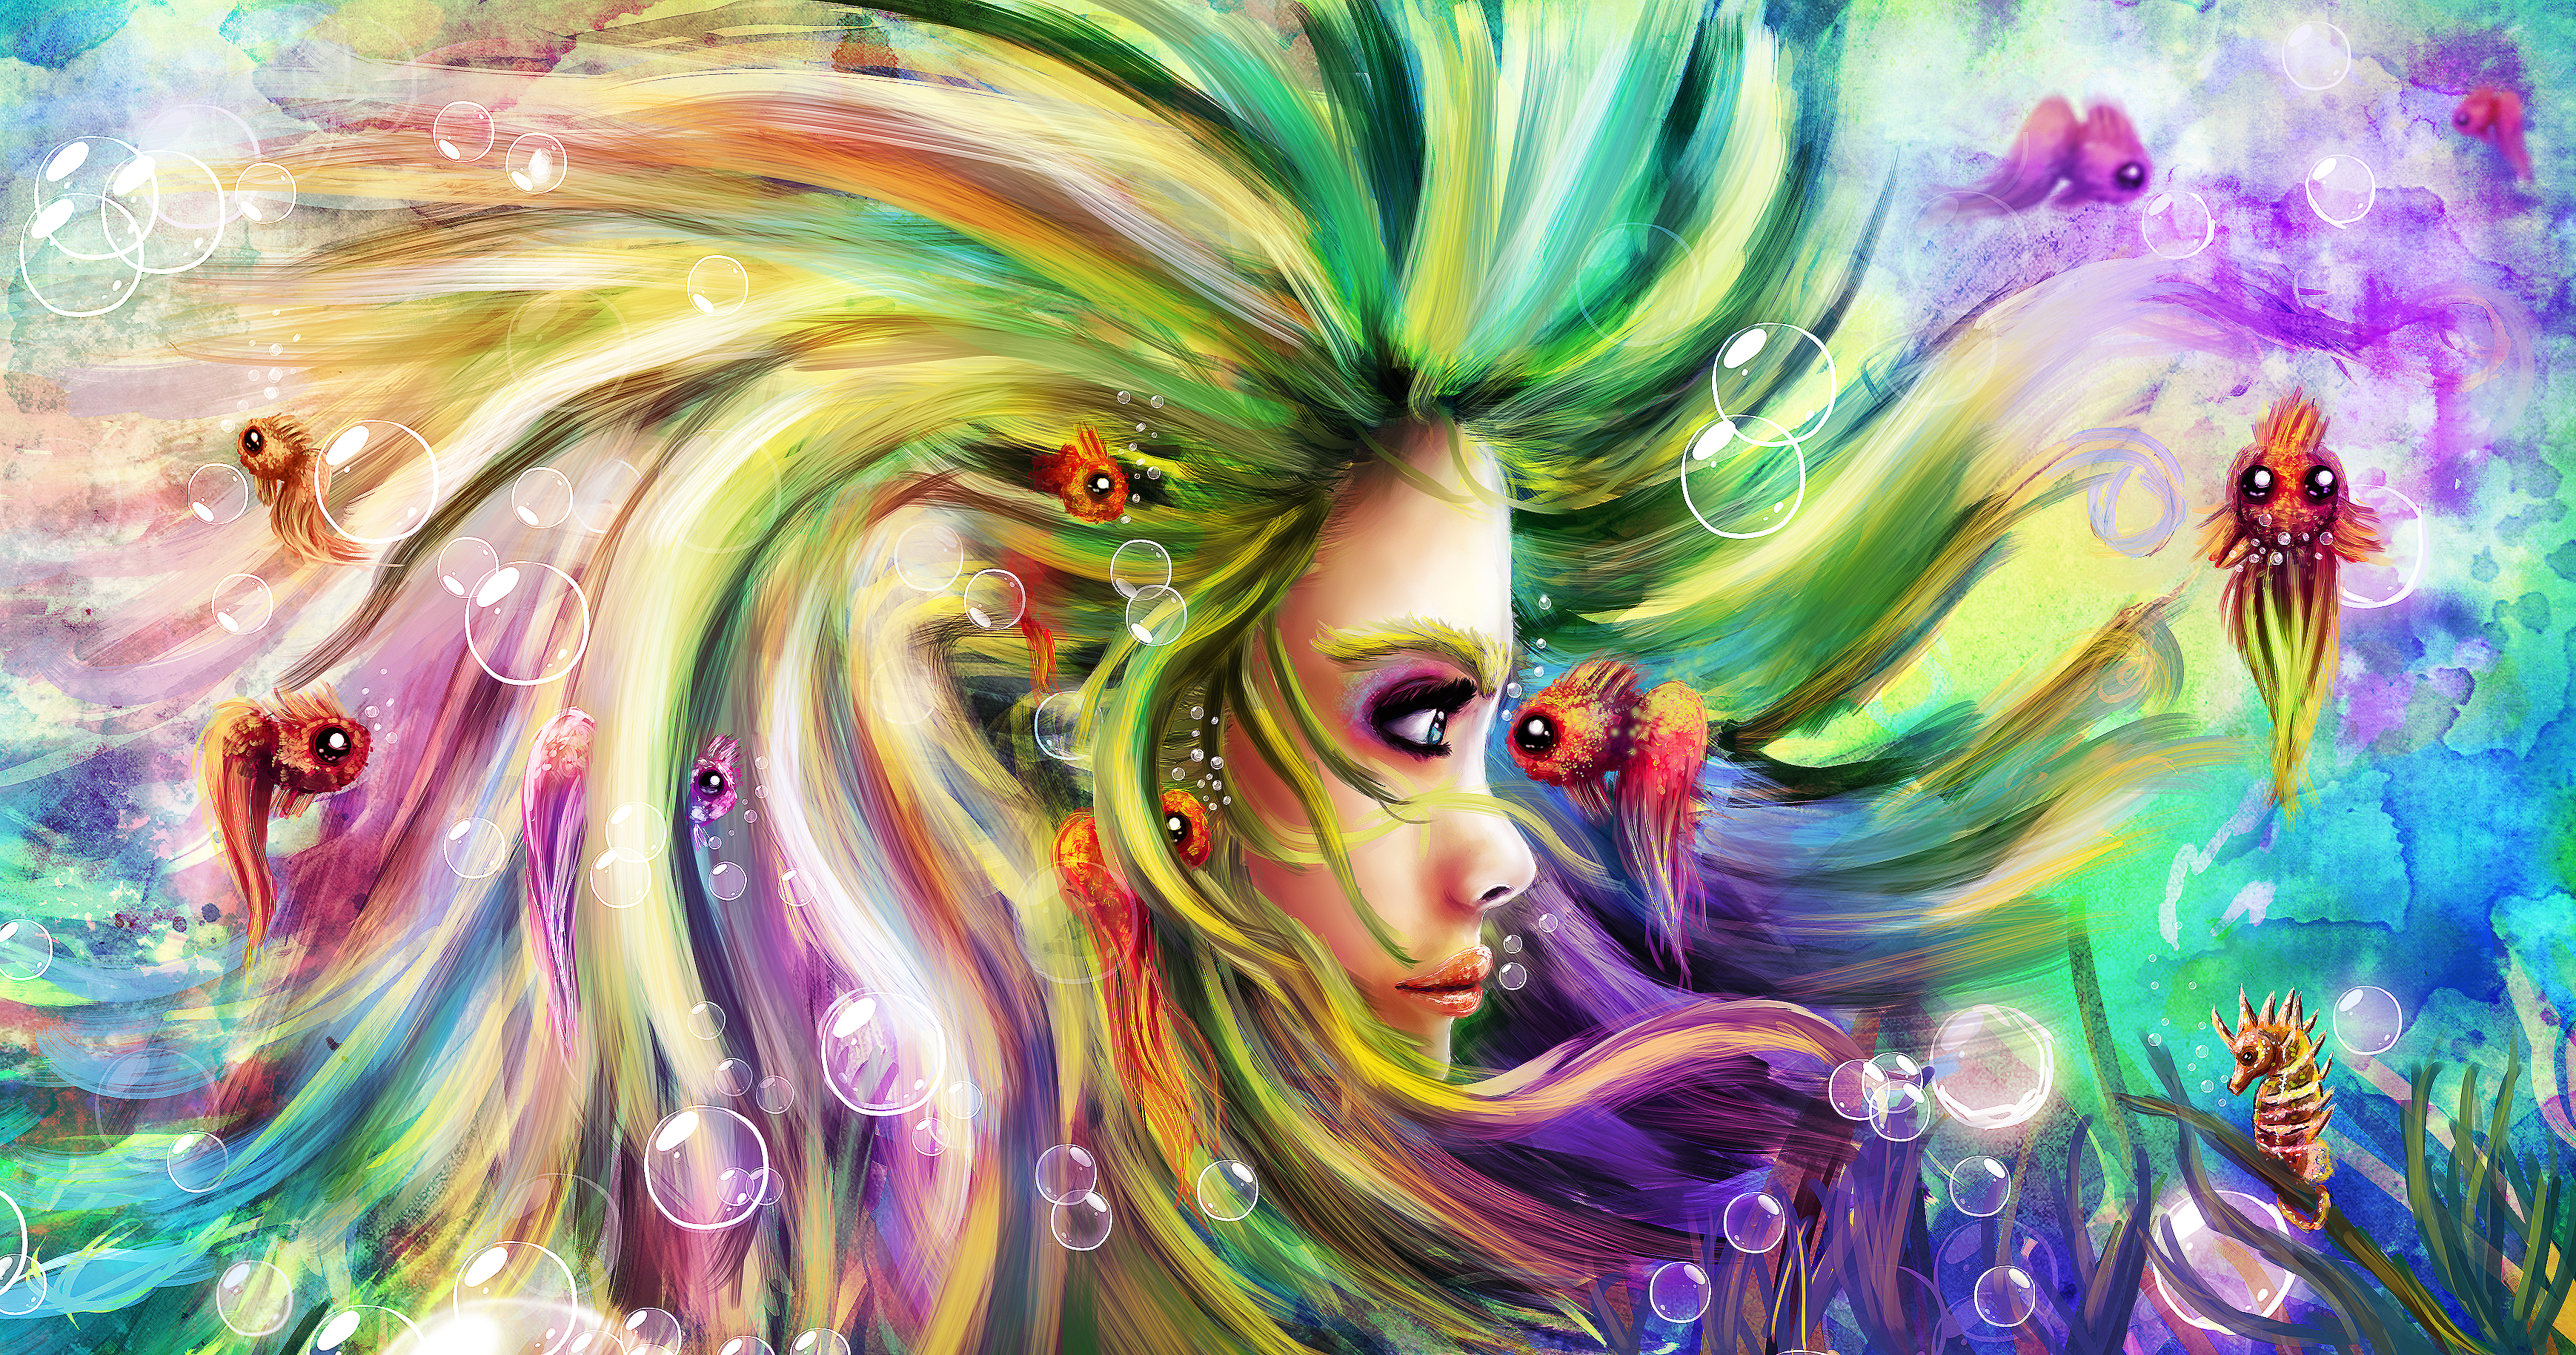 colorful dream by lizzdizz colorful dream by lizzdizz - Colorful Art